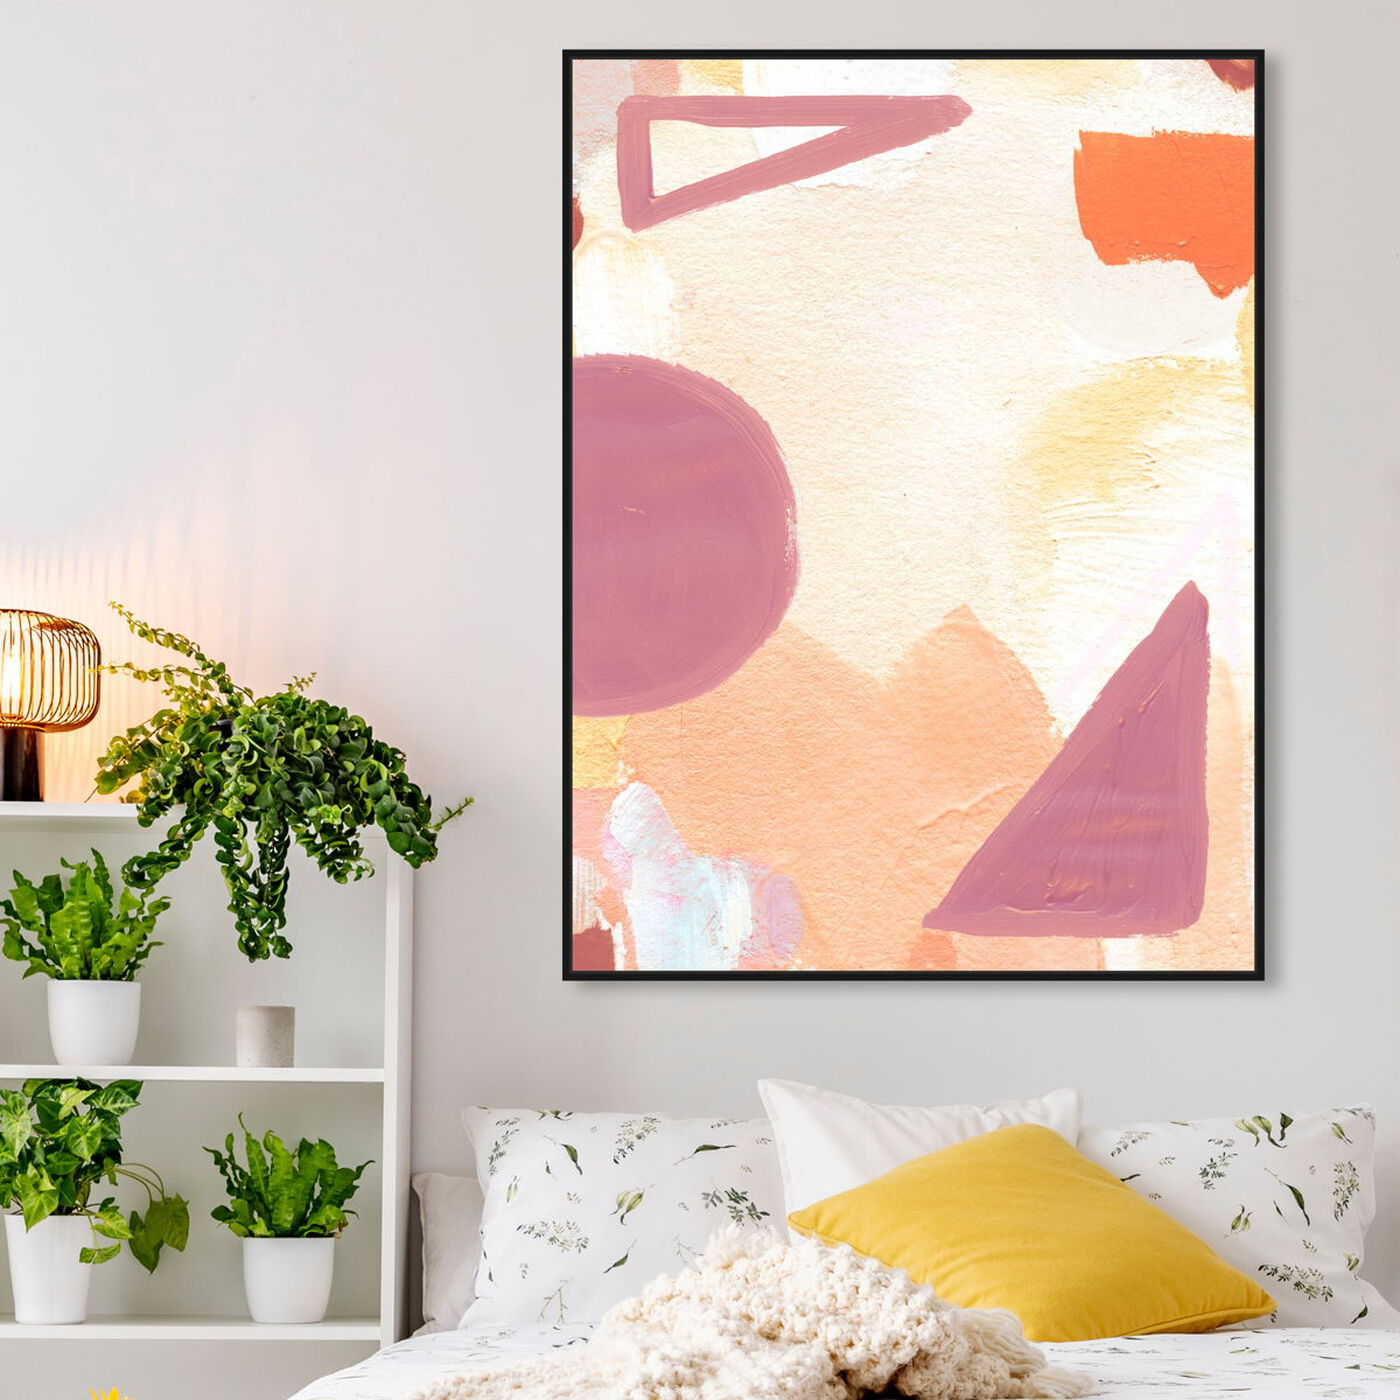 Hanging view of Surreal Poetic featuring abstract and geometric art.